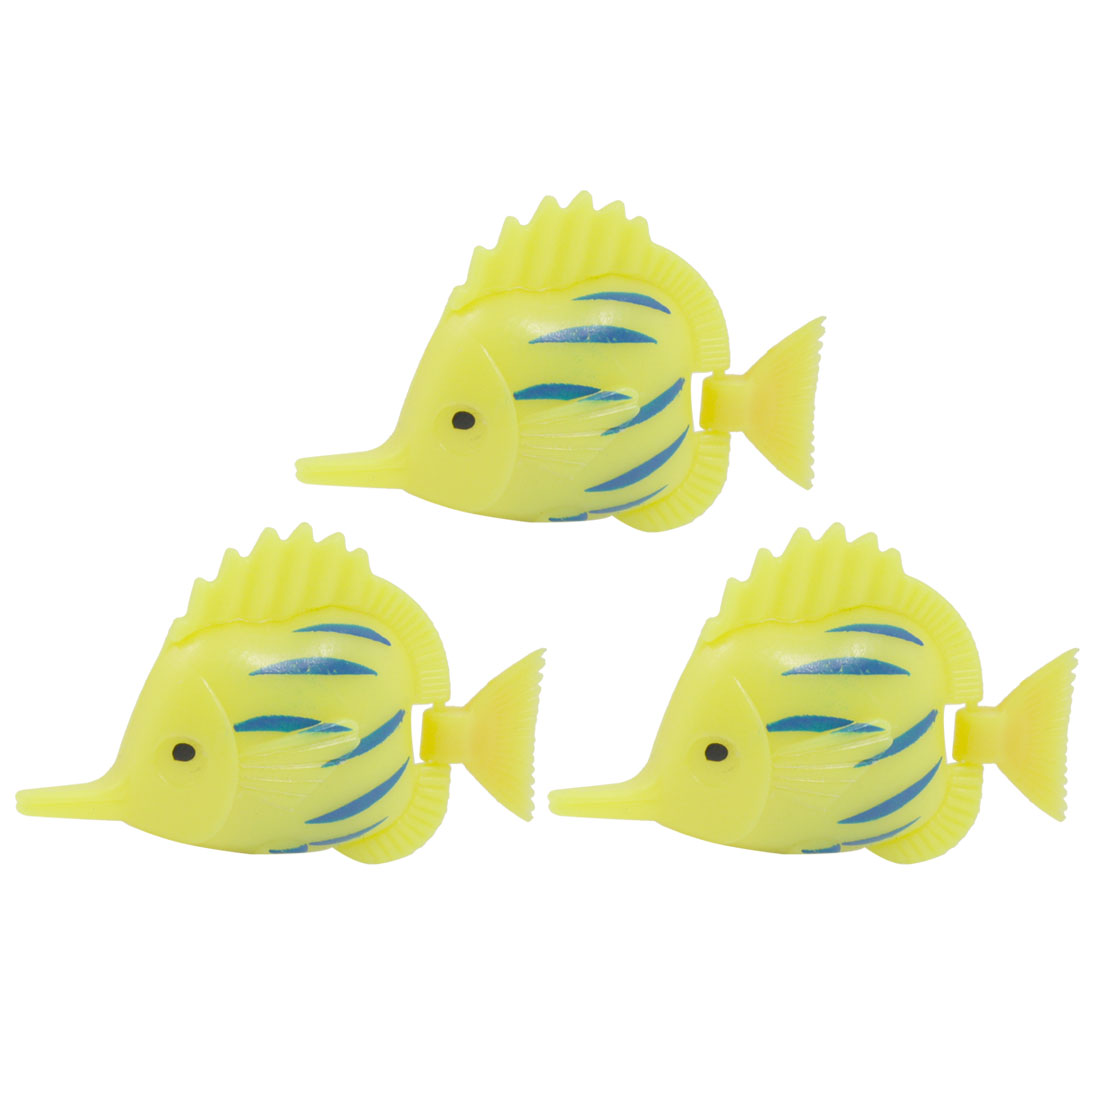 3 Pcs Aquarium Tank Artificial Wiggling Tail Yellow Blue Plastic Fish